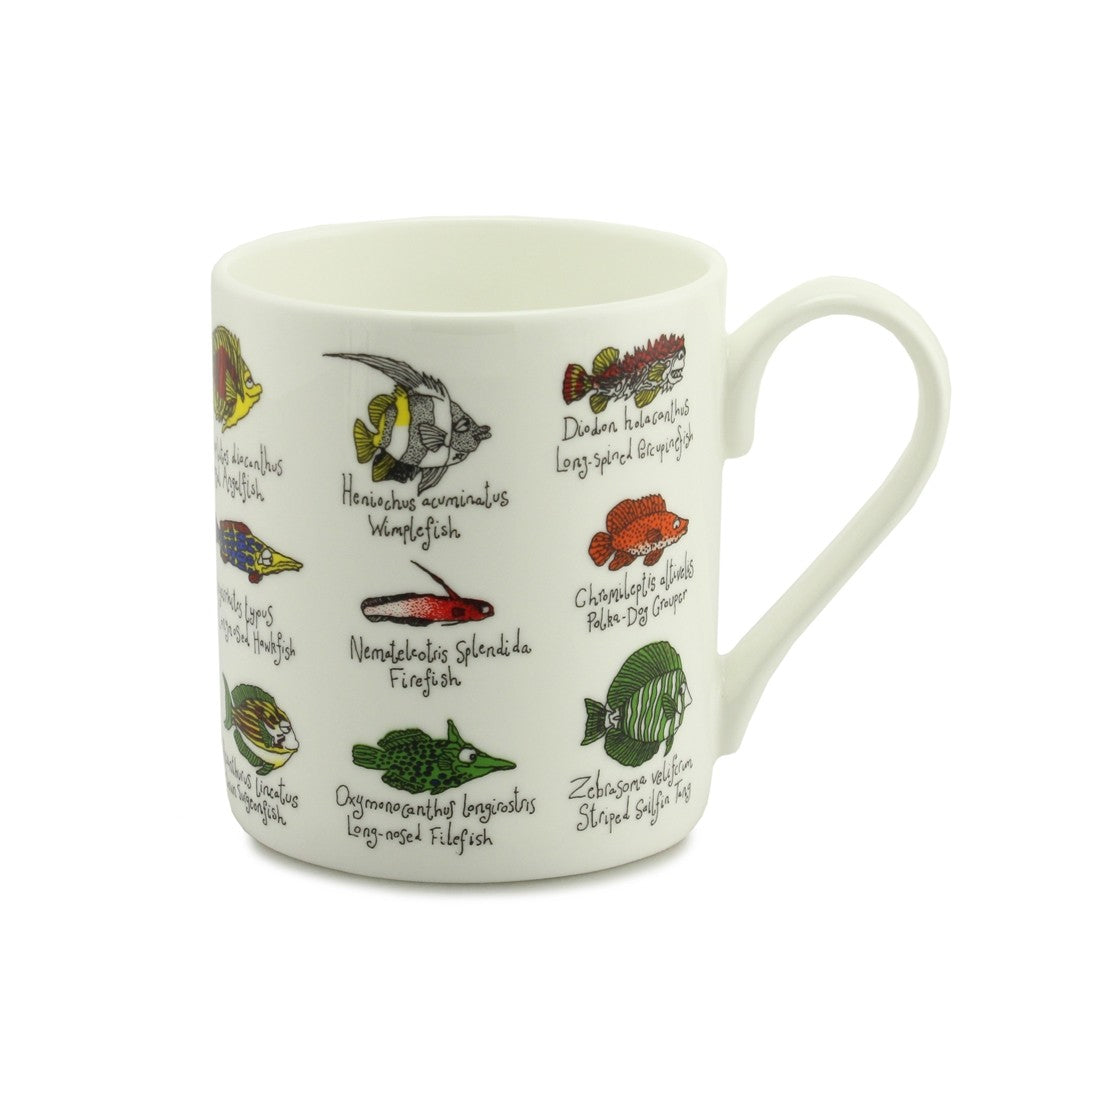 Little Fish China Mug